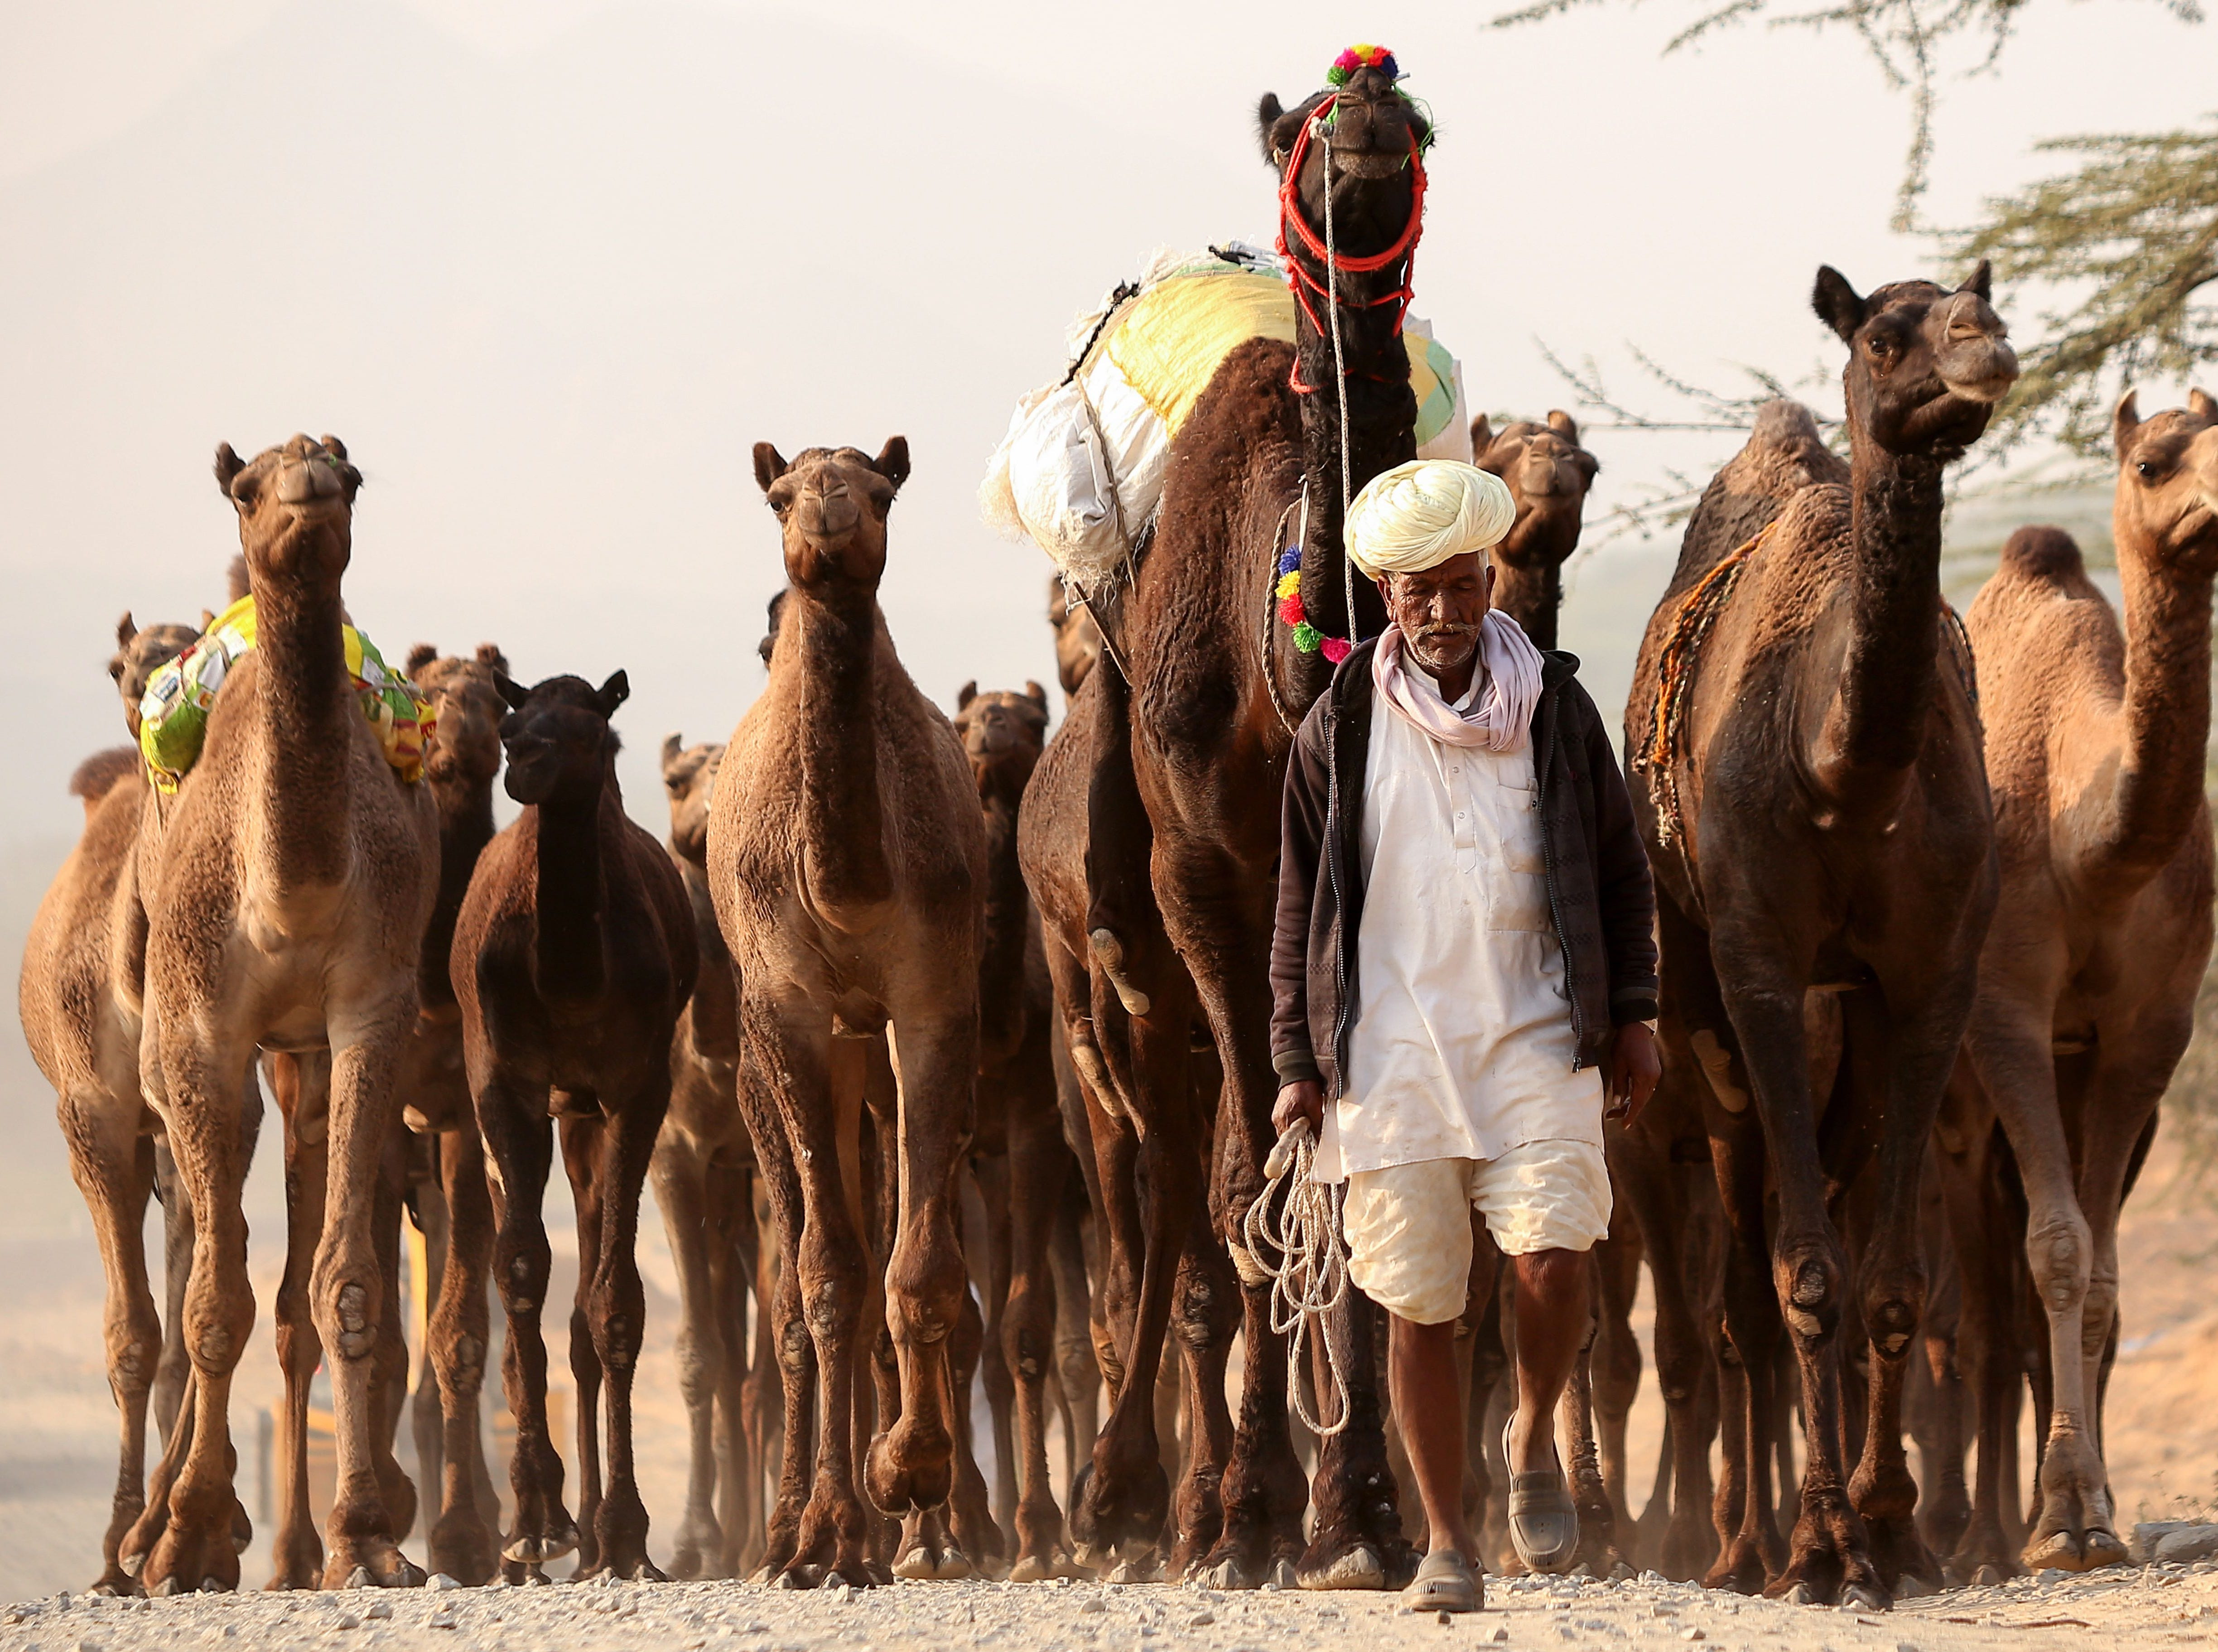 An Indian camel herder walks with his camels at the Pushkar Camel Fair in Pushkar, in the western state of Rajasthan, on November 15, 2018.  The annual five-day camel and livestock fair is one of the world's largest.